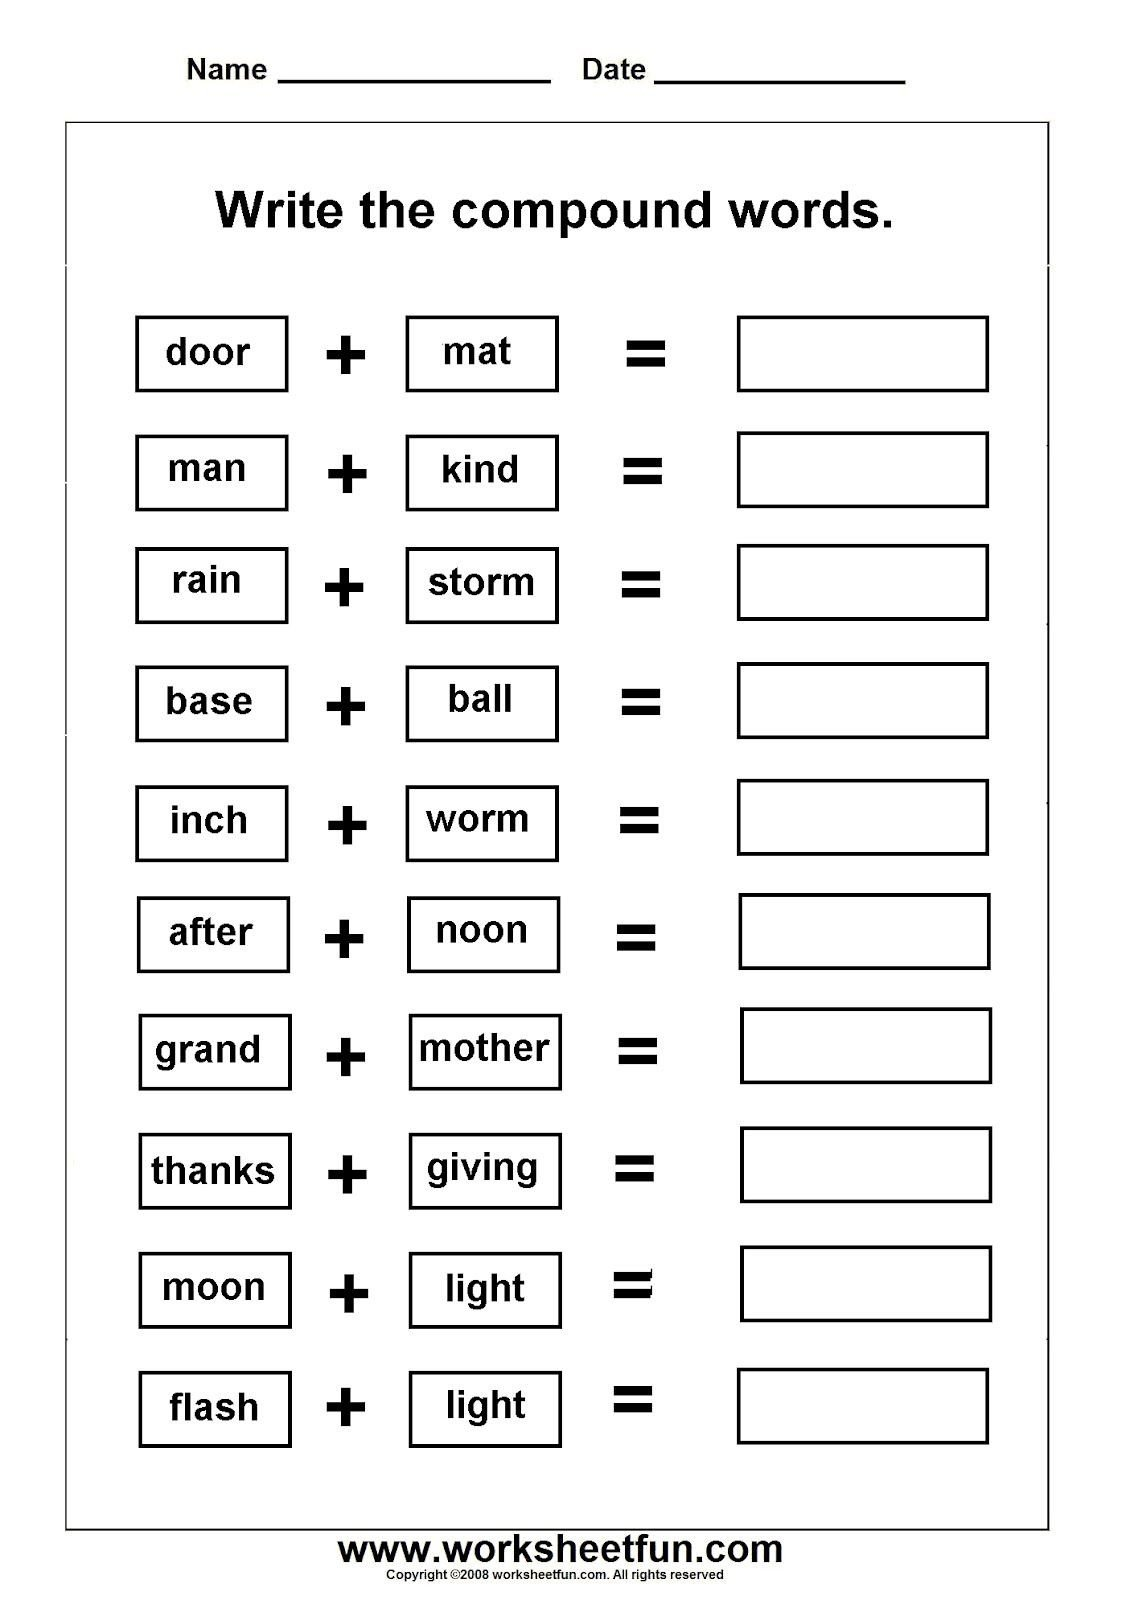 worksheets on pound words with pictures ela activities free printable pound word worksheets